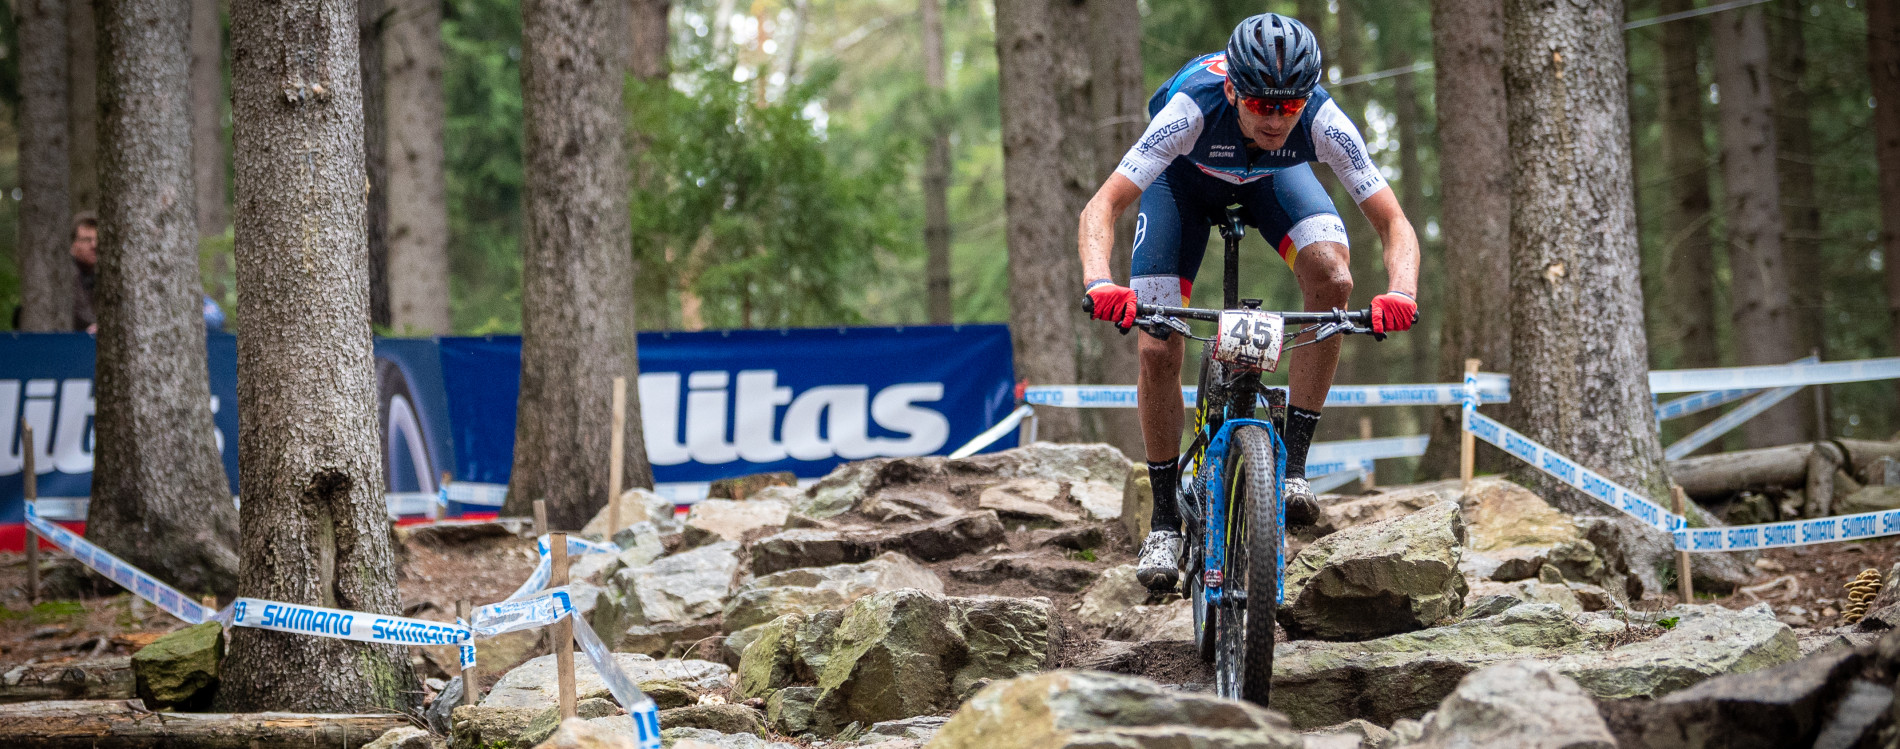 Get ready for the European Mountain Bike Championships!